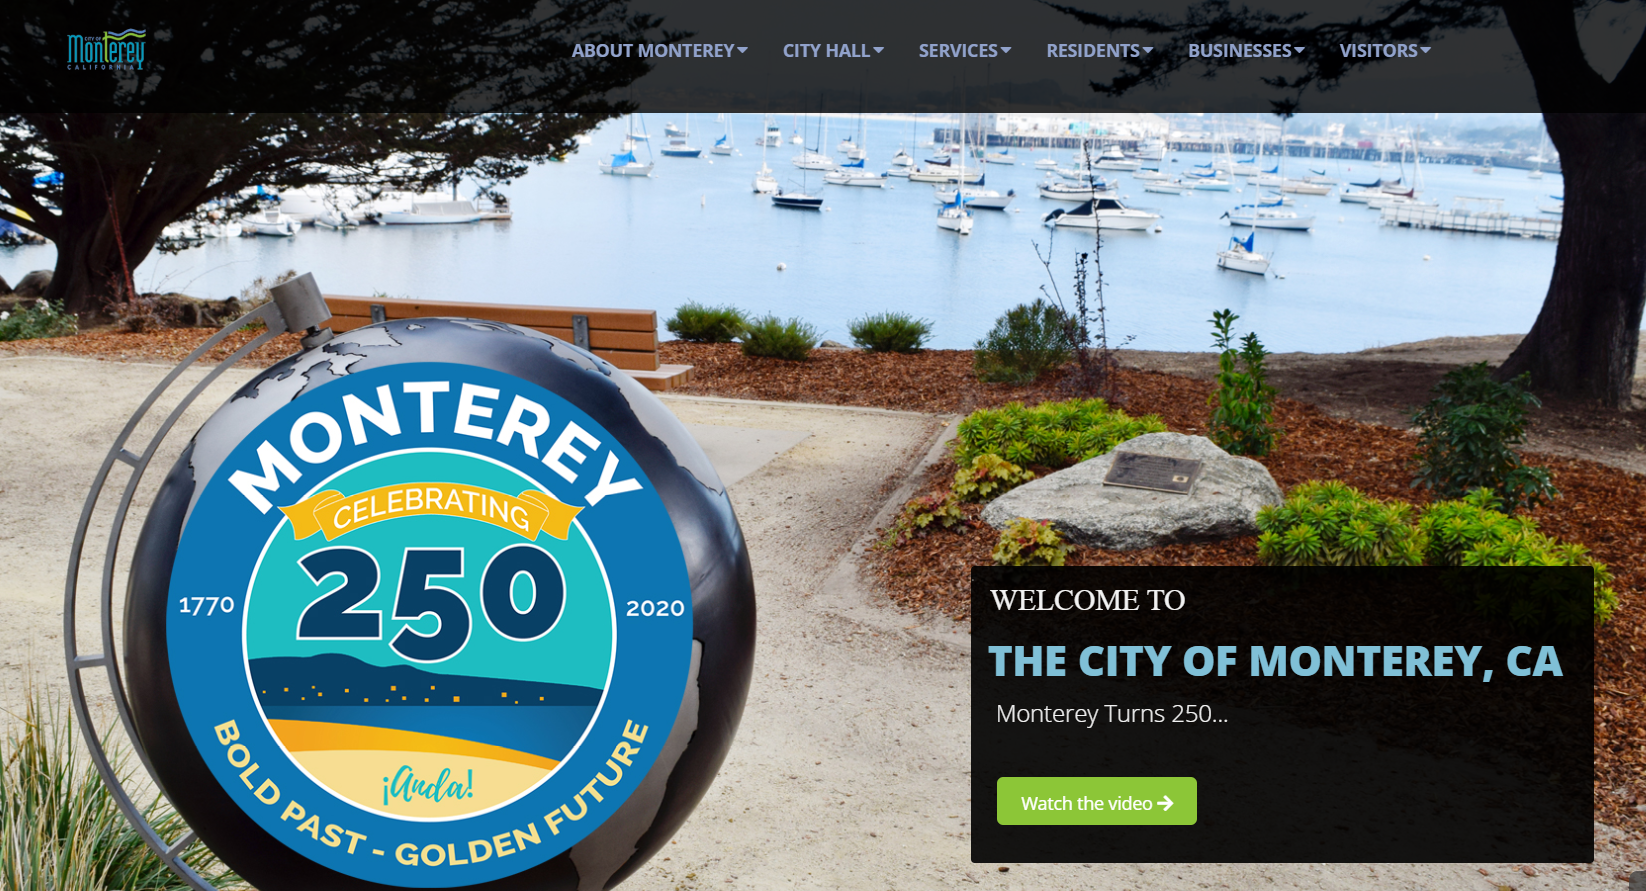 The City of Monterey, California Needs a New Website Solution and Hosting Service ($40k+)